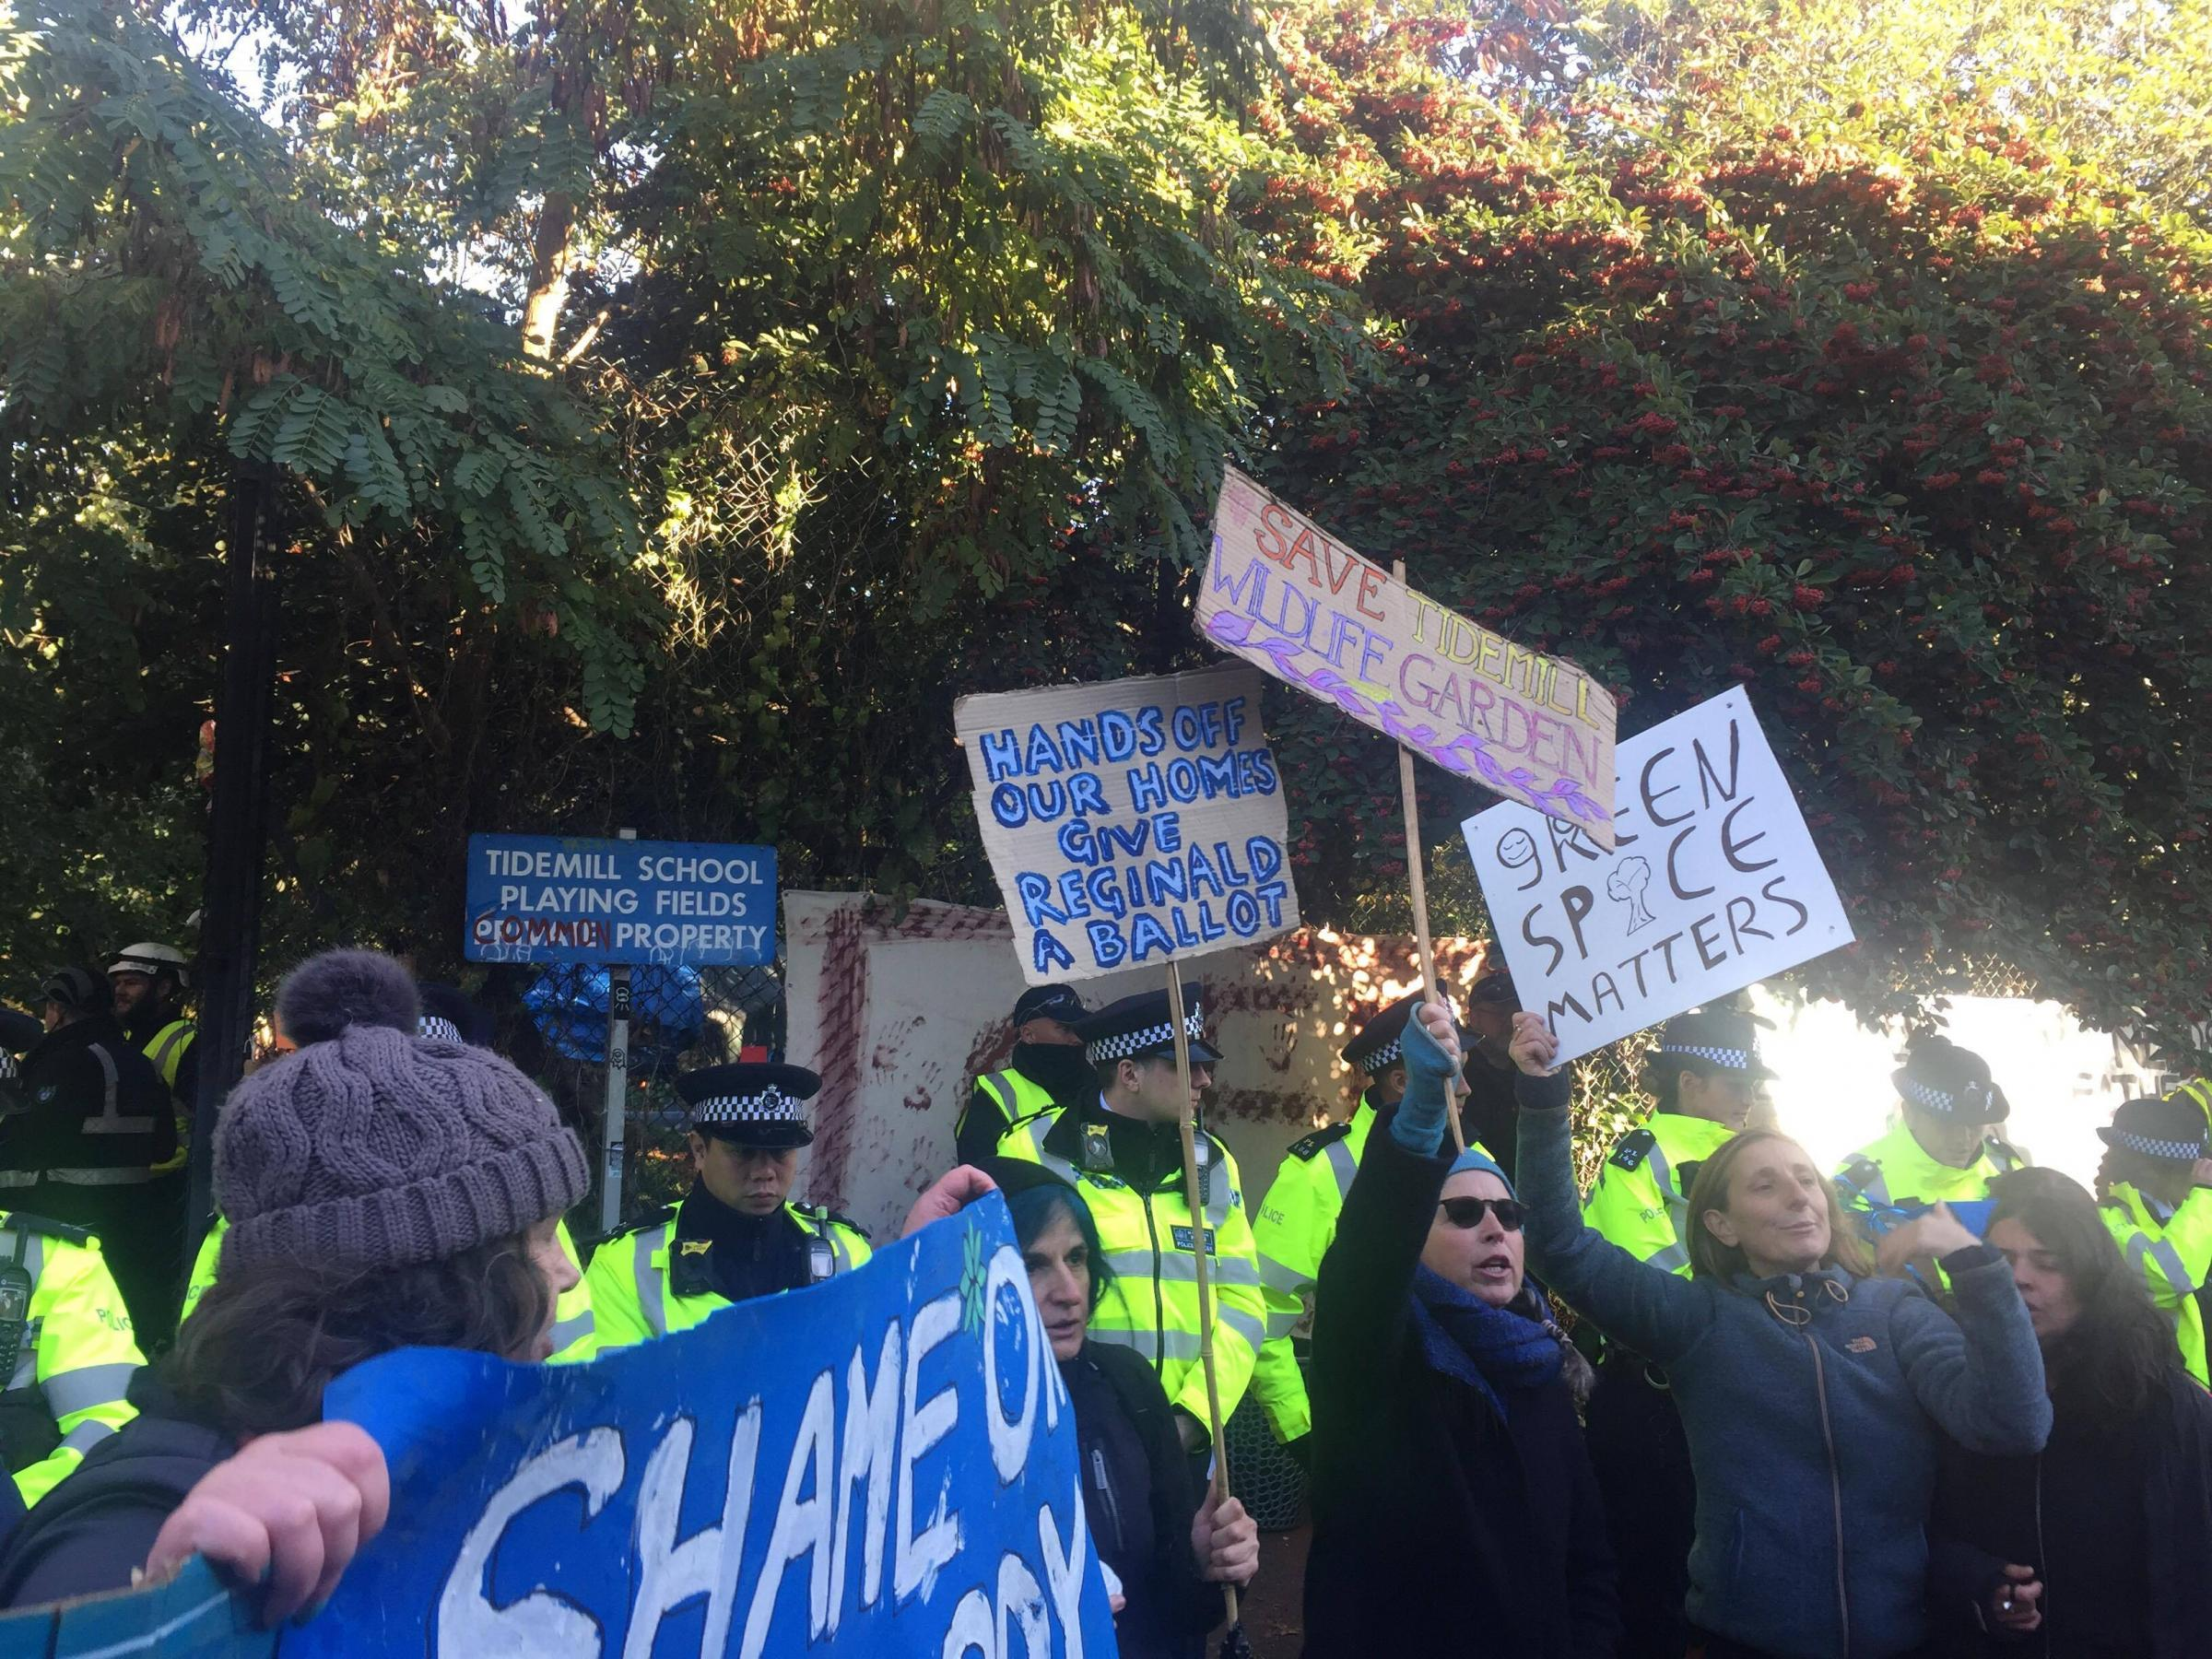 The eviction of protestors at the Old Tidemill Wildlife Garden cost the council £105k.